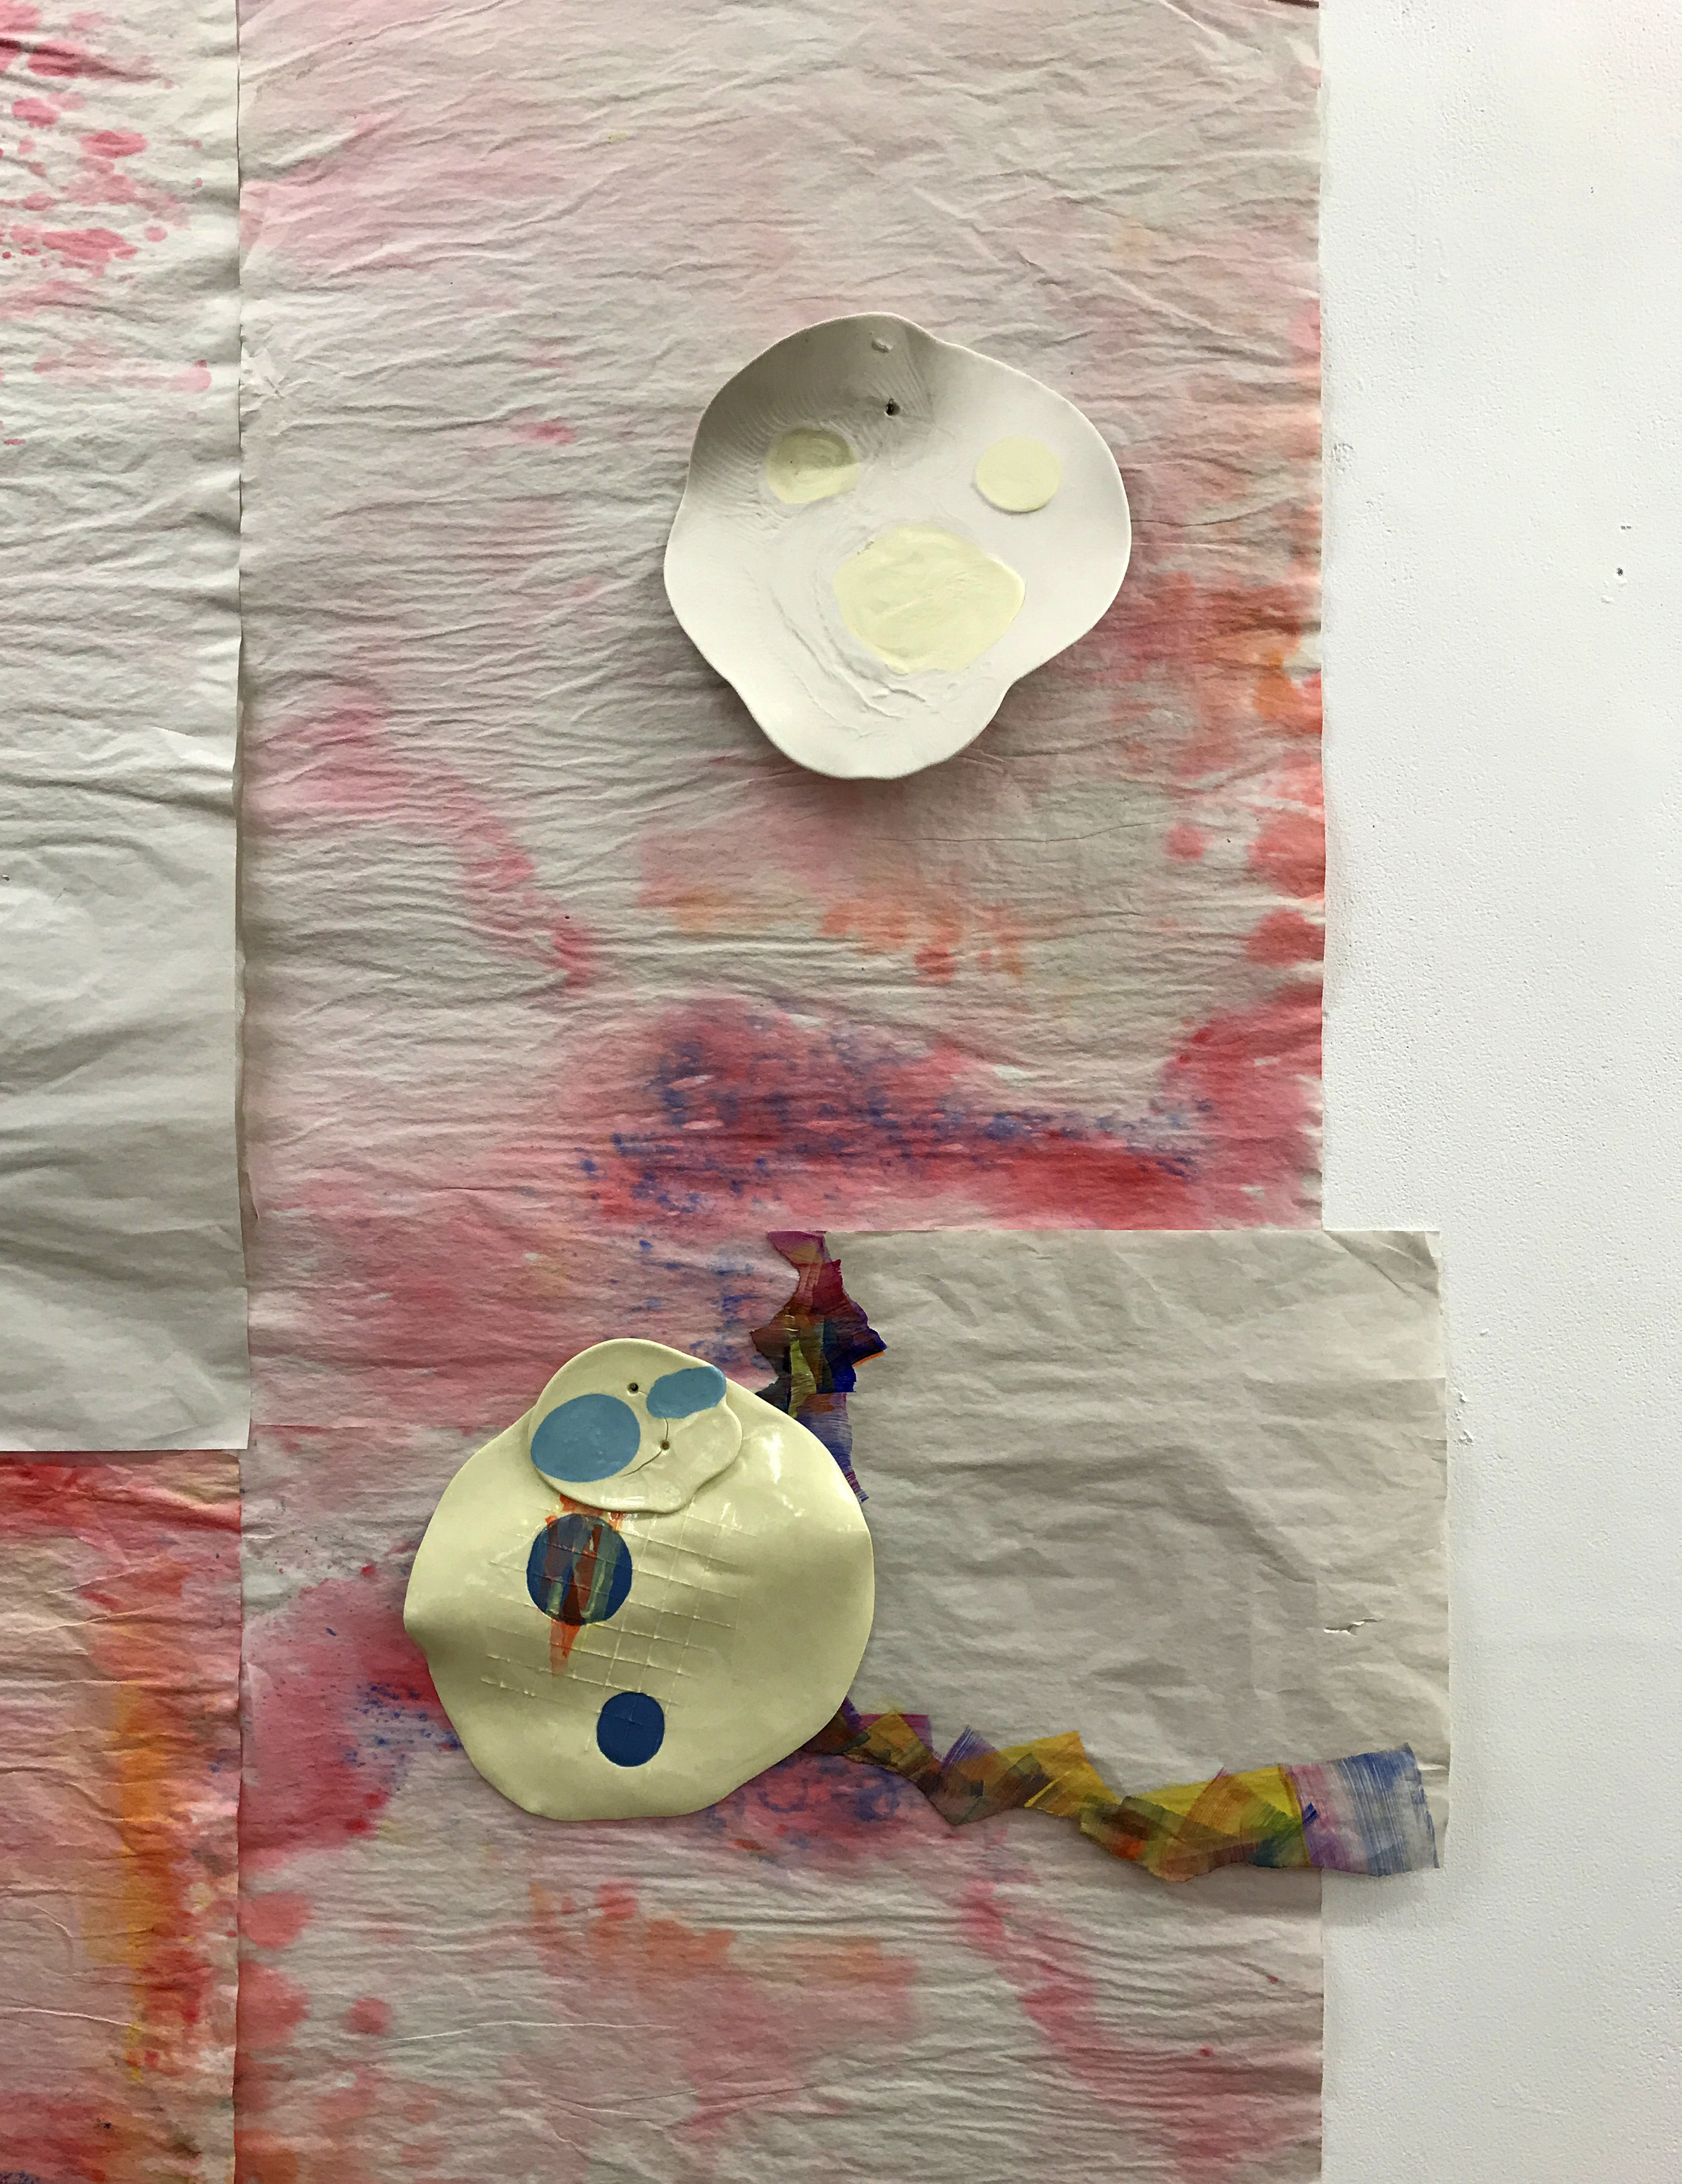 Paper, watercolour, oil paint, unglazed and glazed porcelain, 2018